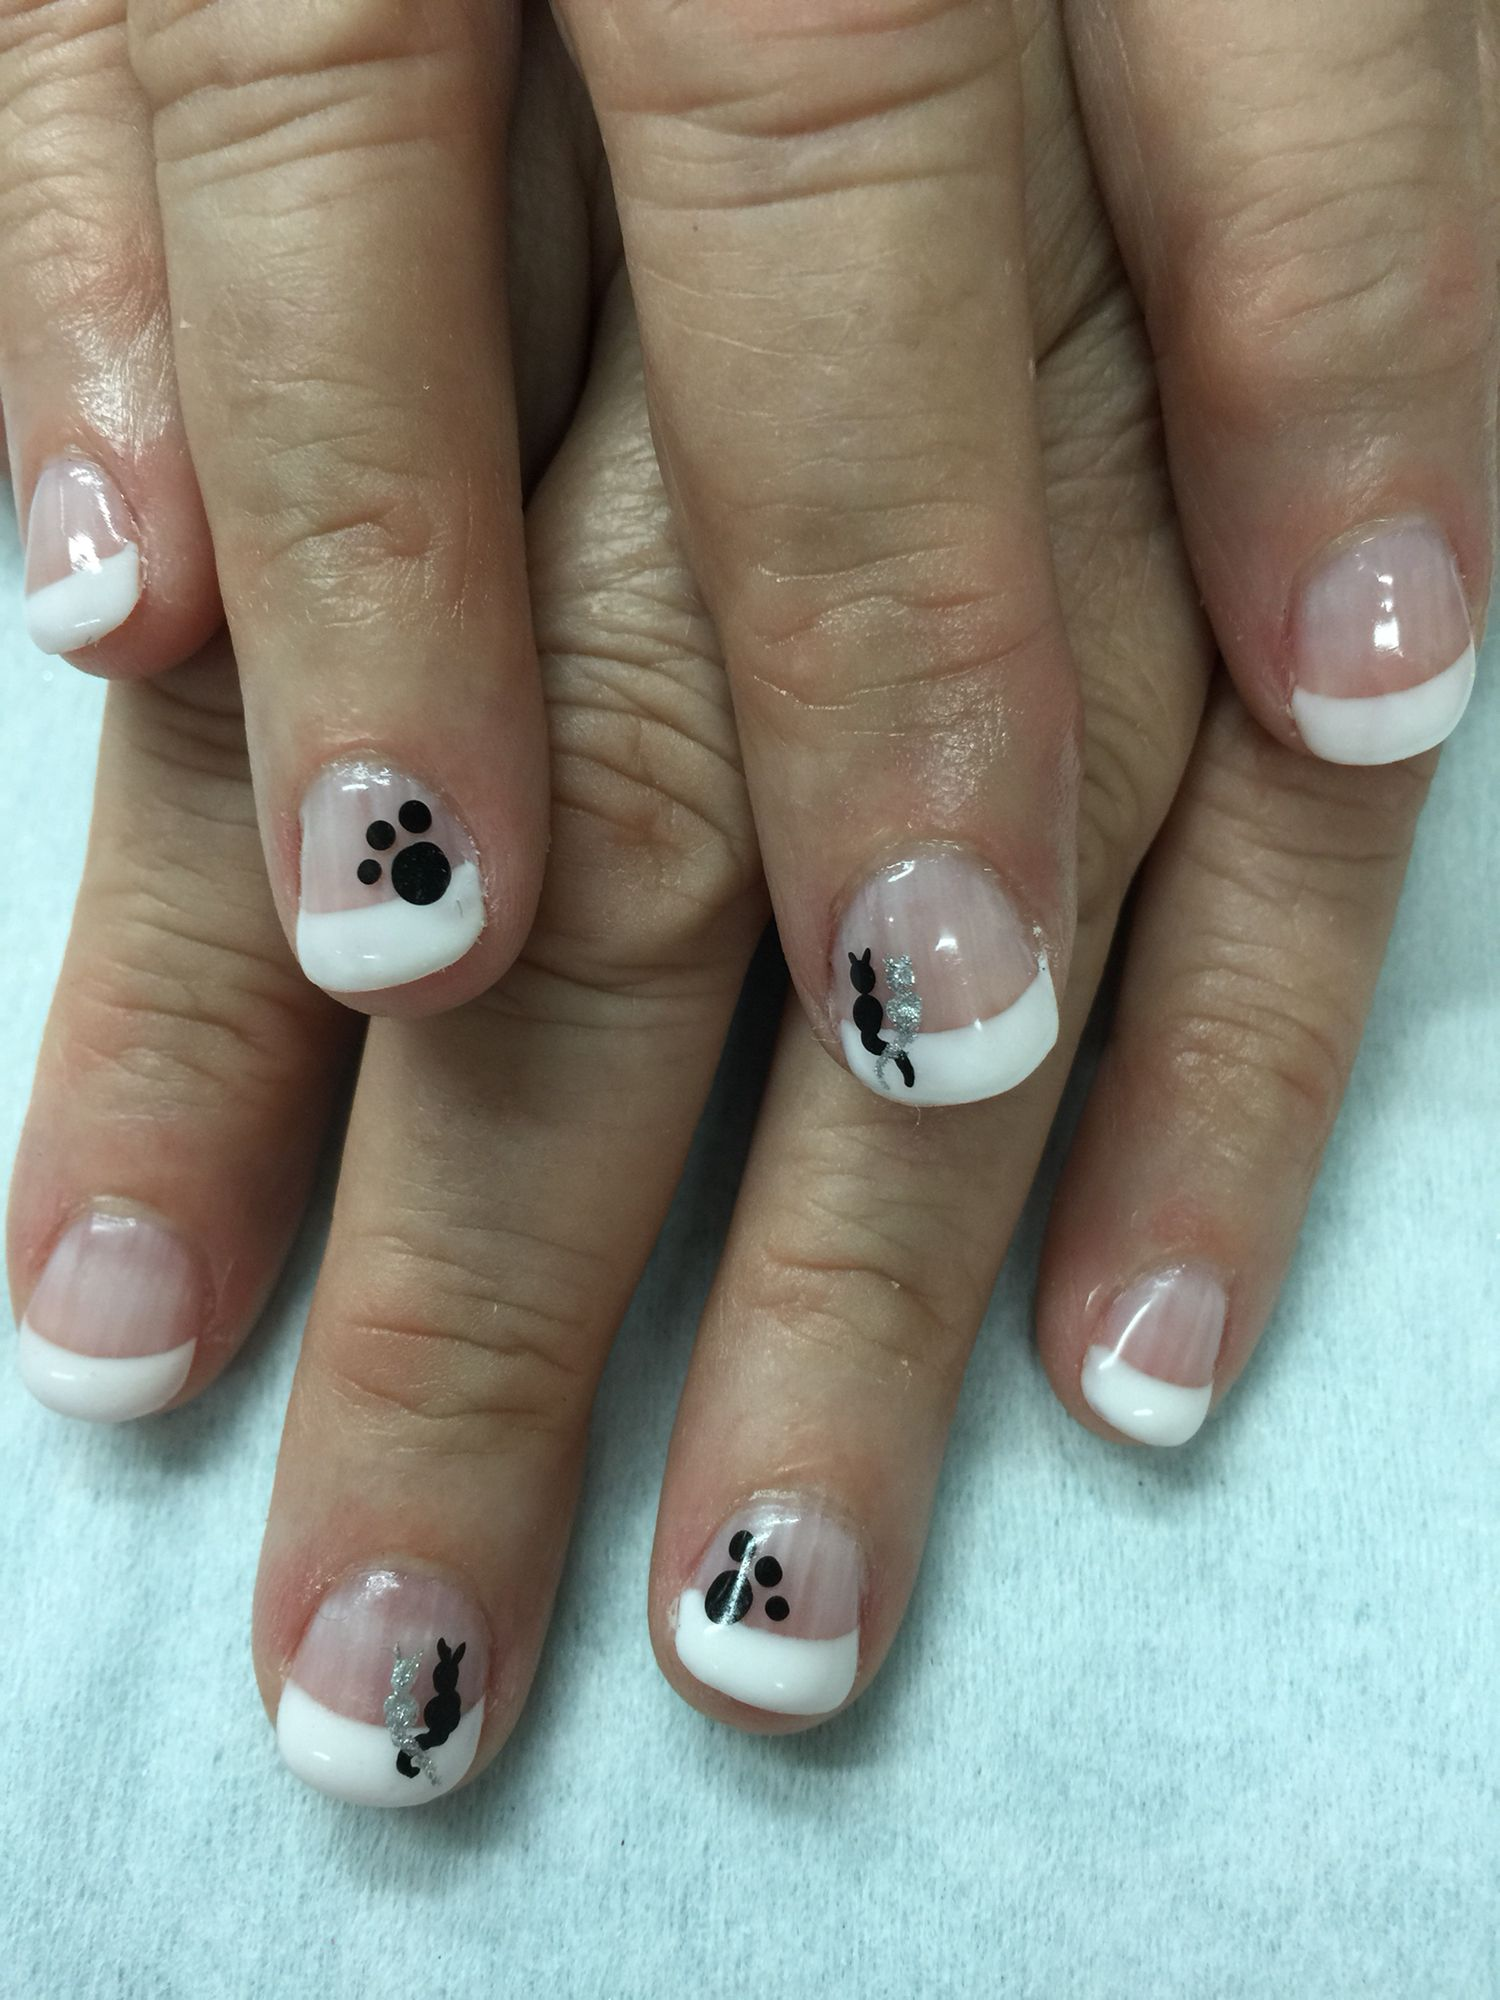 White French Gel Nails With Kitty Cat Designs And Paws All Done